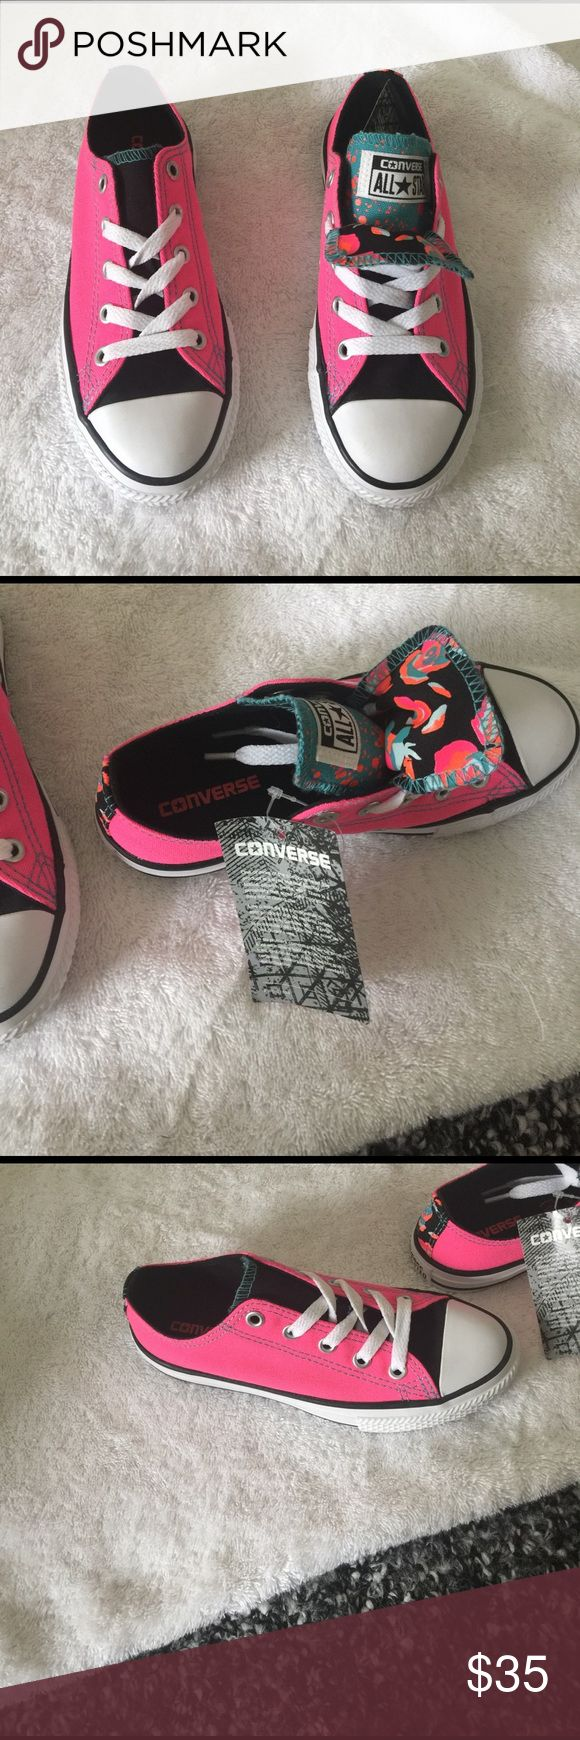 Converse kids shoes NWT Double tongue shoe, mostly pink and black. Comes with box. Converse Shoes Sneakers